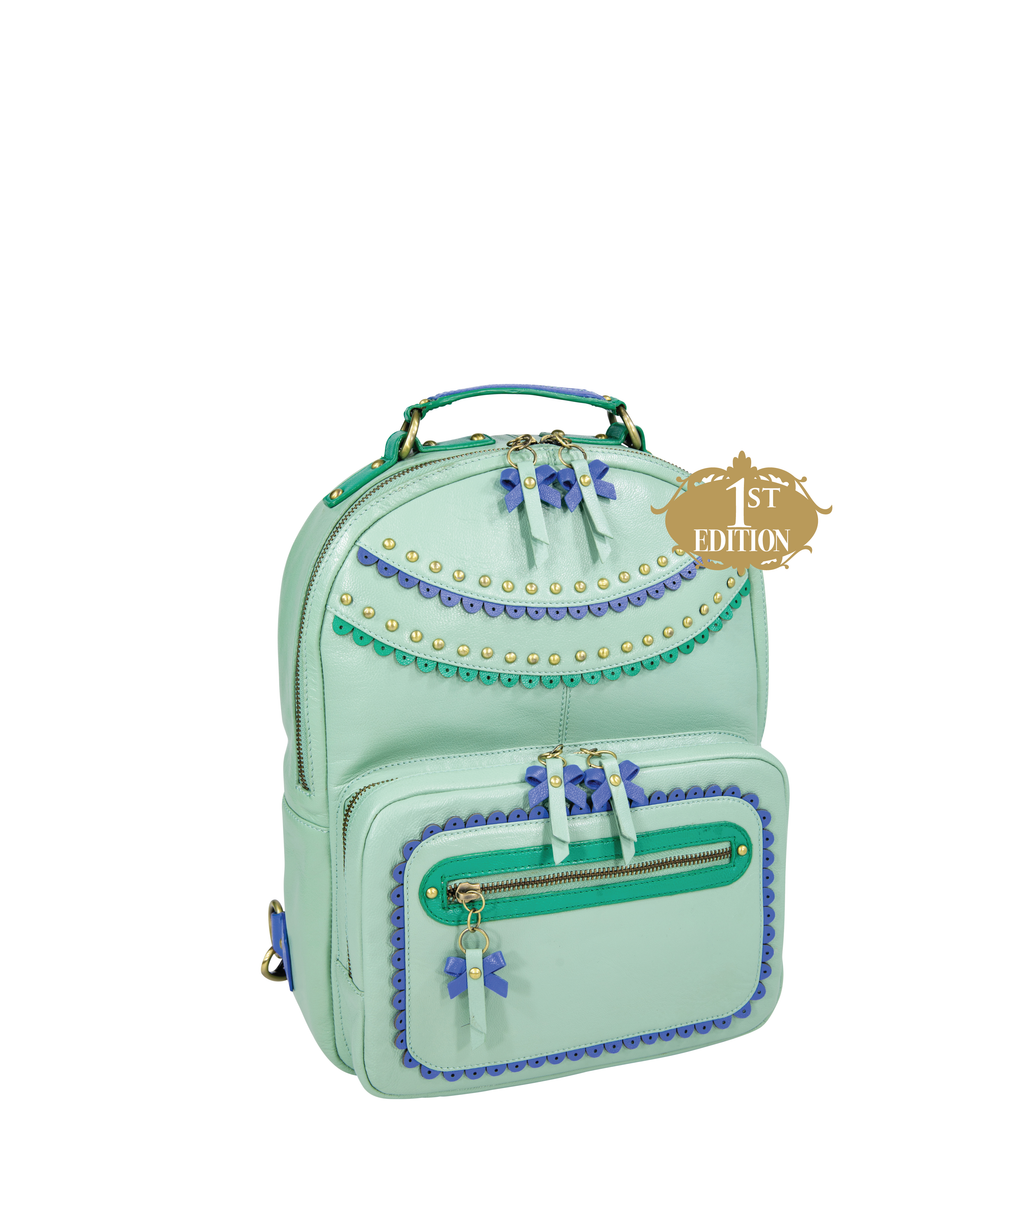 PIPPA Backpack - Jungle Fever - 1st Edition